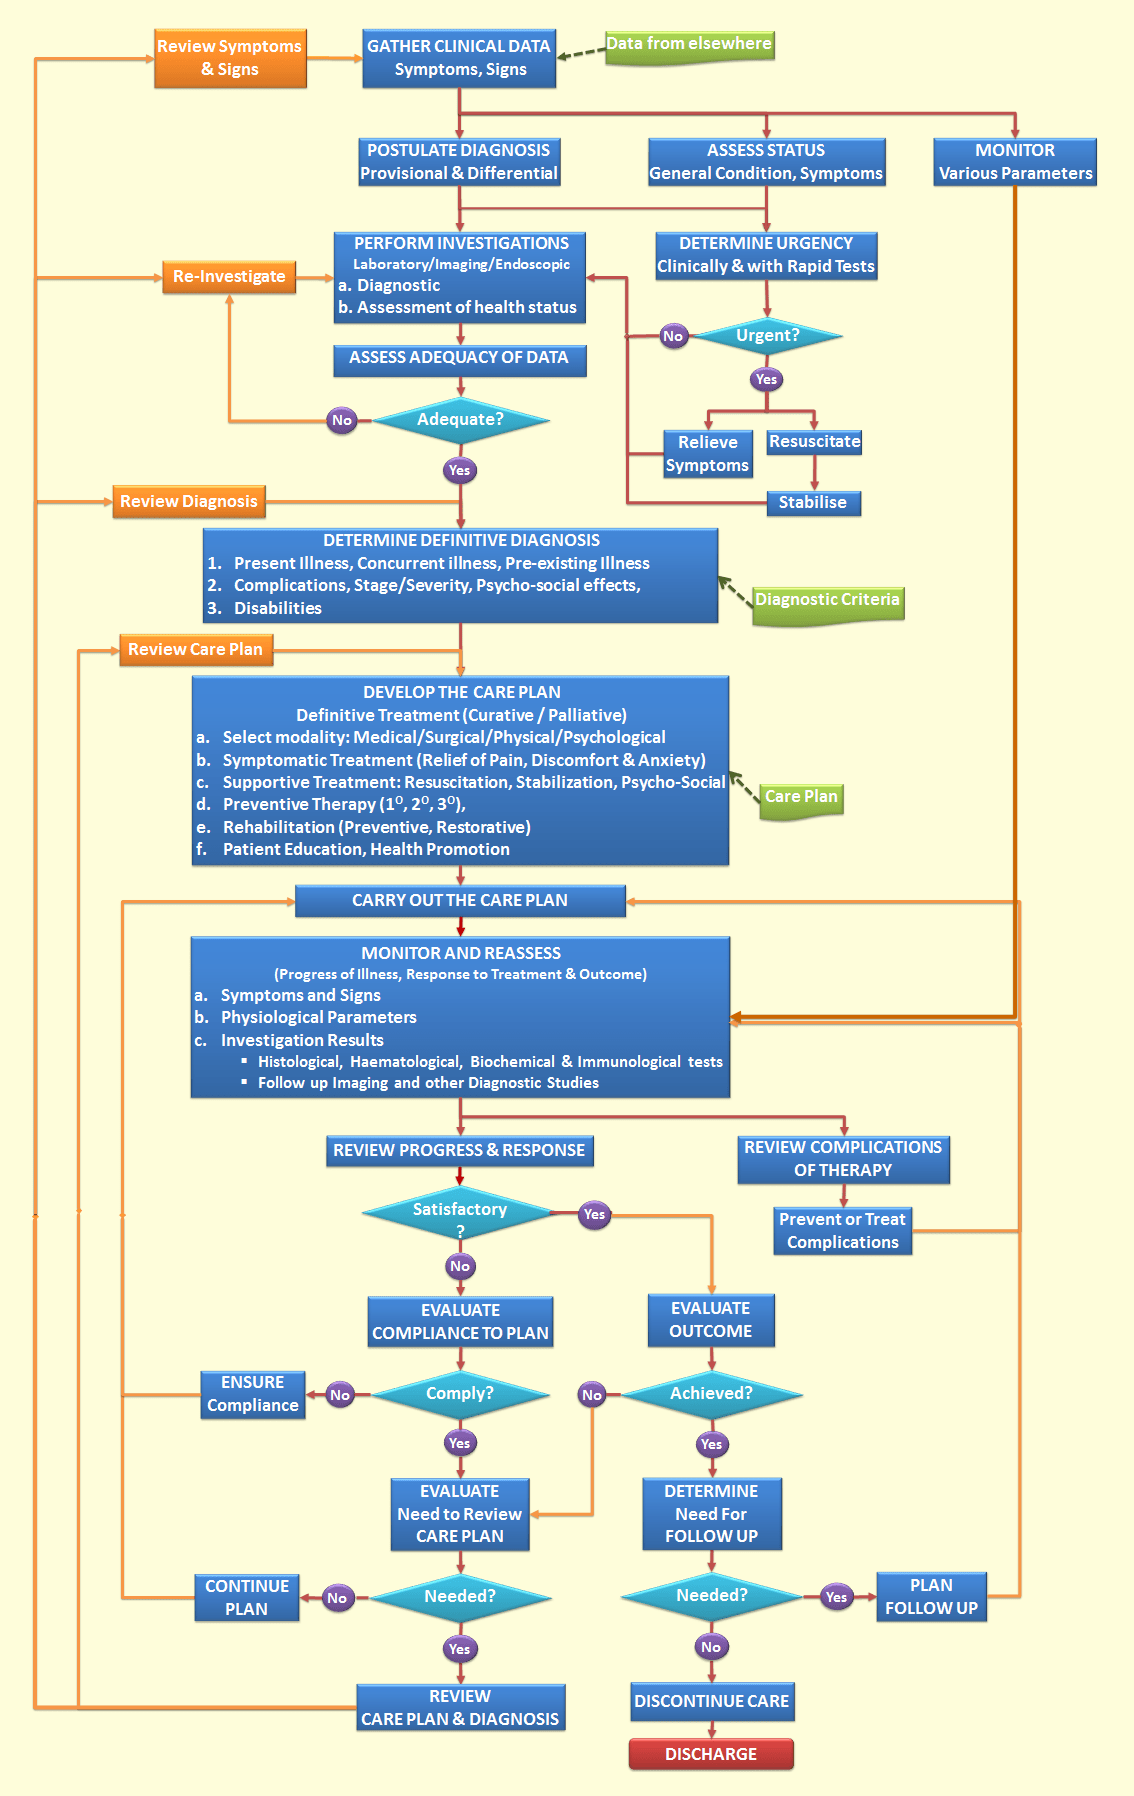 nursing workflow diagram examples gfs dream 180 wiring outpatient 28 images diagrams of emr